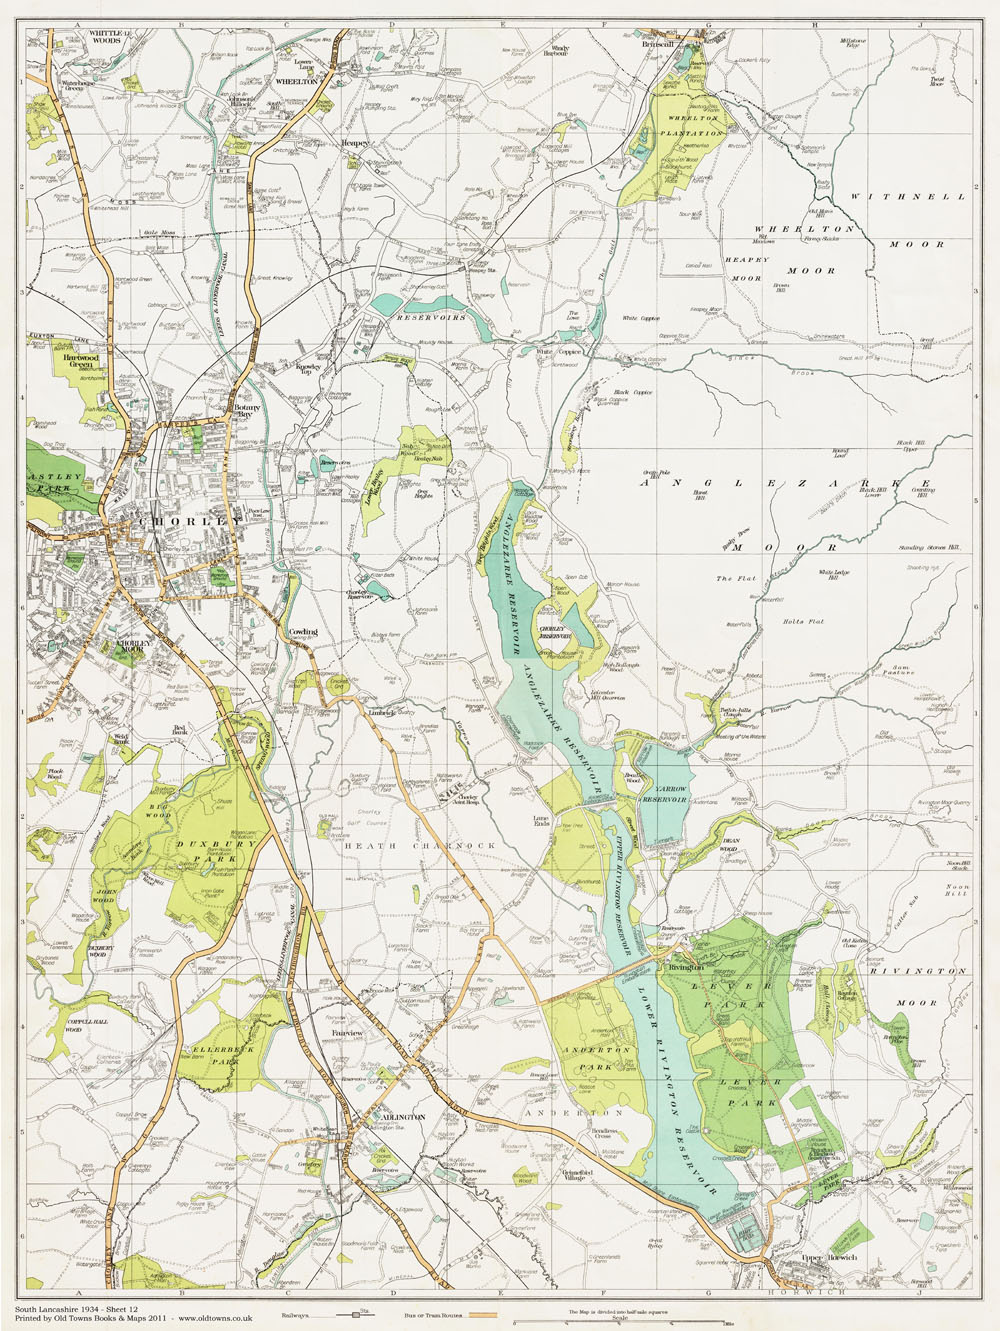 An Old Map Of The Chorley Area Lancashire In 1934 As An Instant